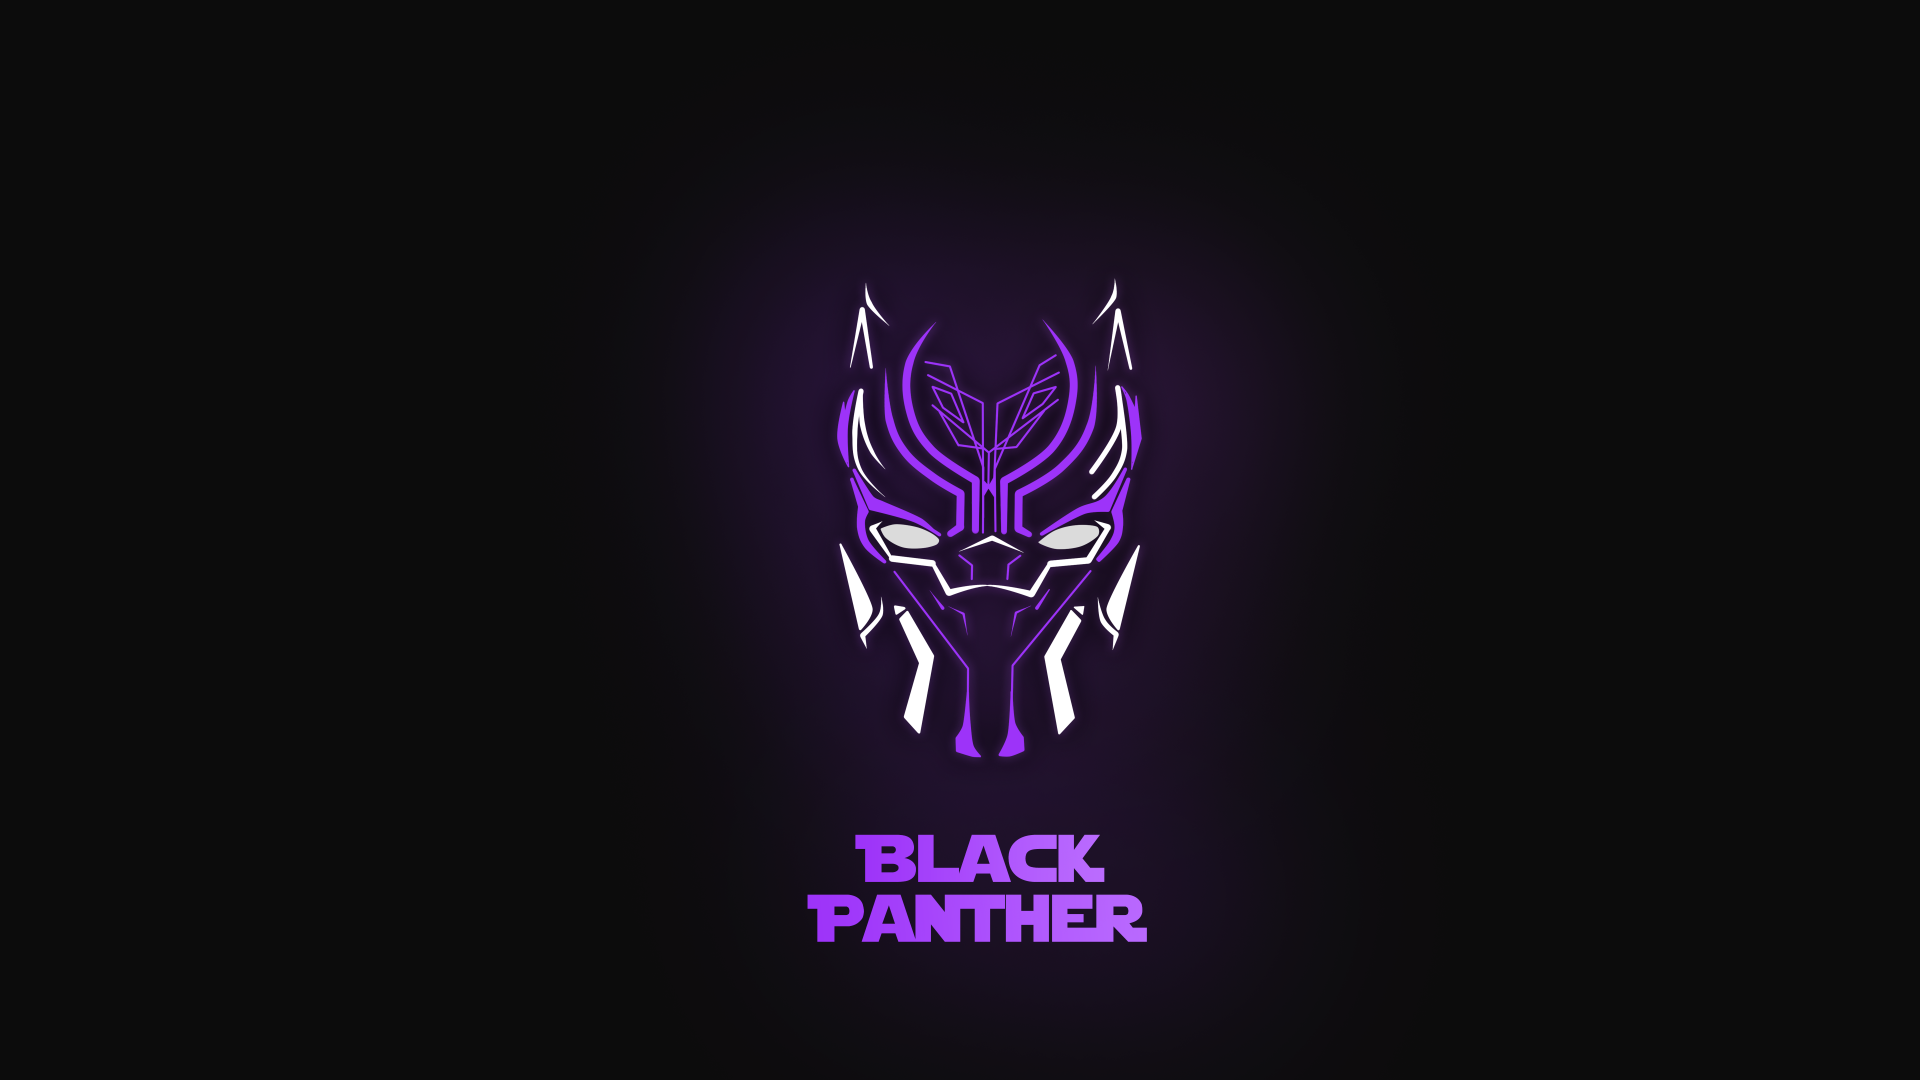 Download Wallpapers Of Black Panther Purple Dark Background Minimal Neon Hd 5k Creative Graphics In 2020 Black Panther Hd Wallpaper Neon Wallpaper Black Panther